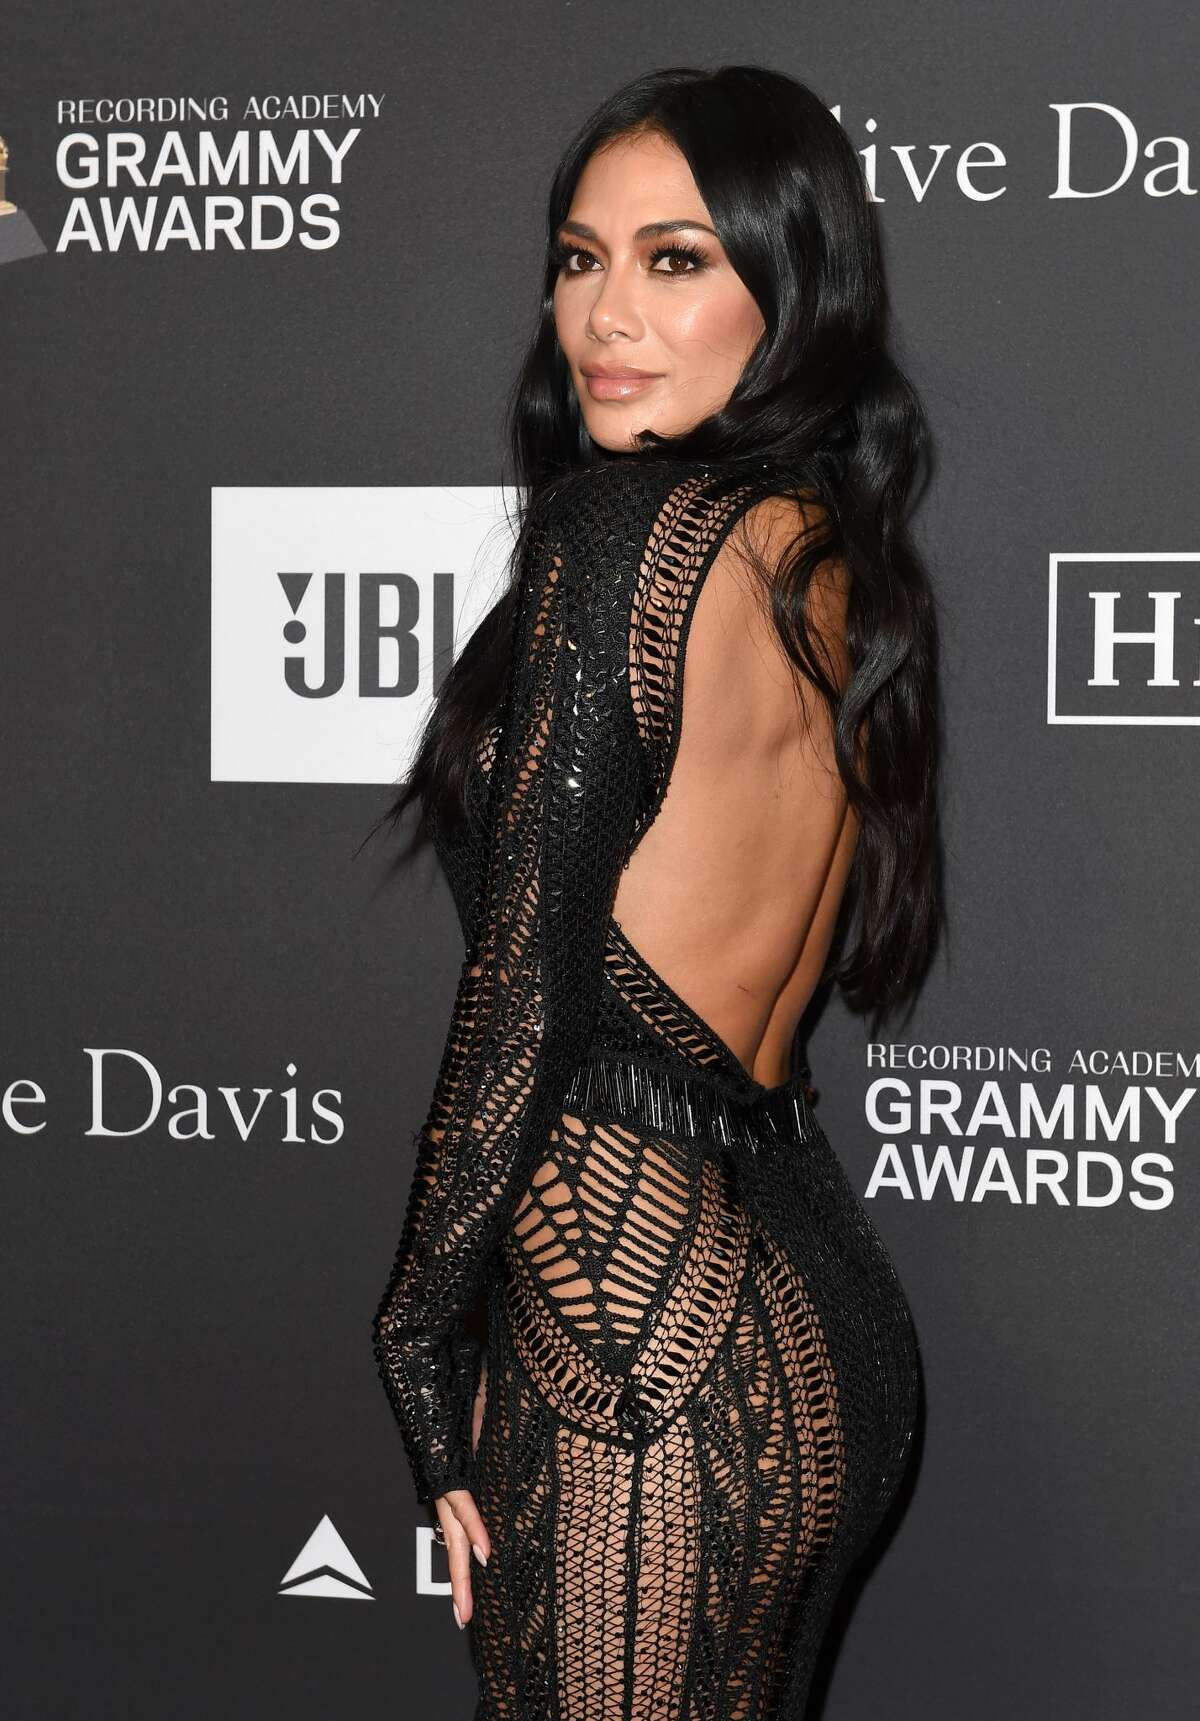 BEVERLY HILLS, CALIFORNIA - FEBRUARY 09: Nicole Scherzinger attends The Recording Academy and Clive Davis' 2019 Pre-GRAMMY Gala at The Beverly Hilton Hotel on February 09, 2019 in Beverly Hills, California. (Photo by Axelle/Bauer-Griffin/FilmMagic)